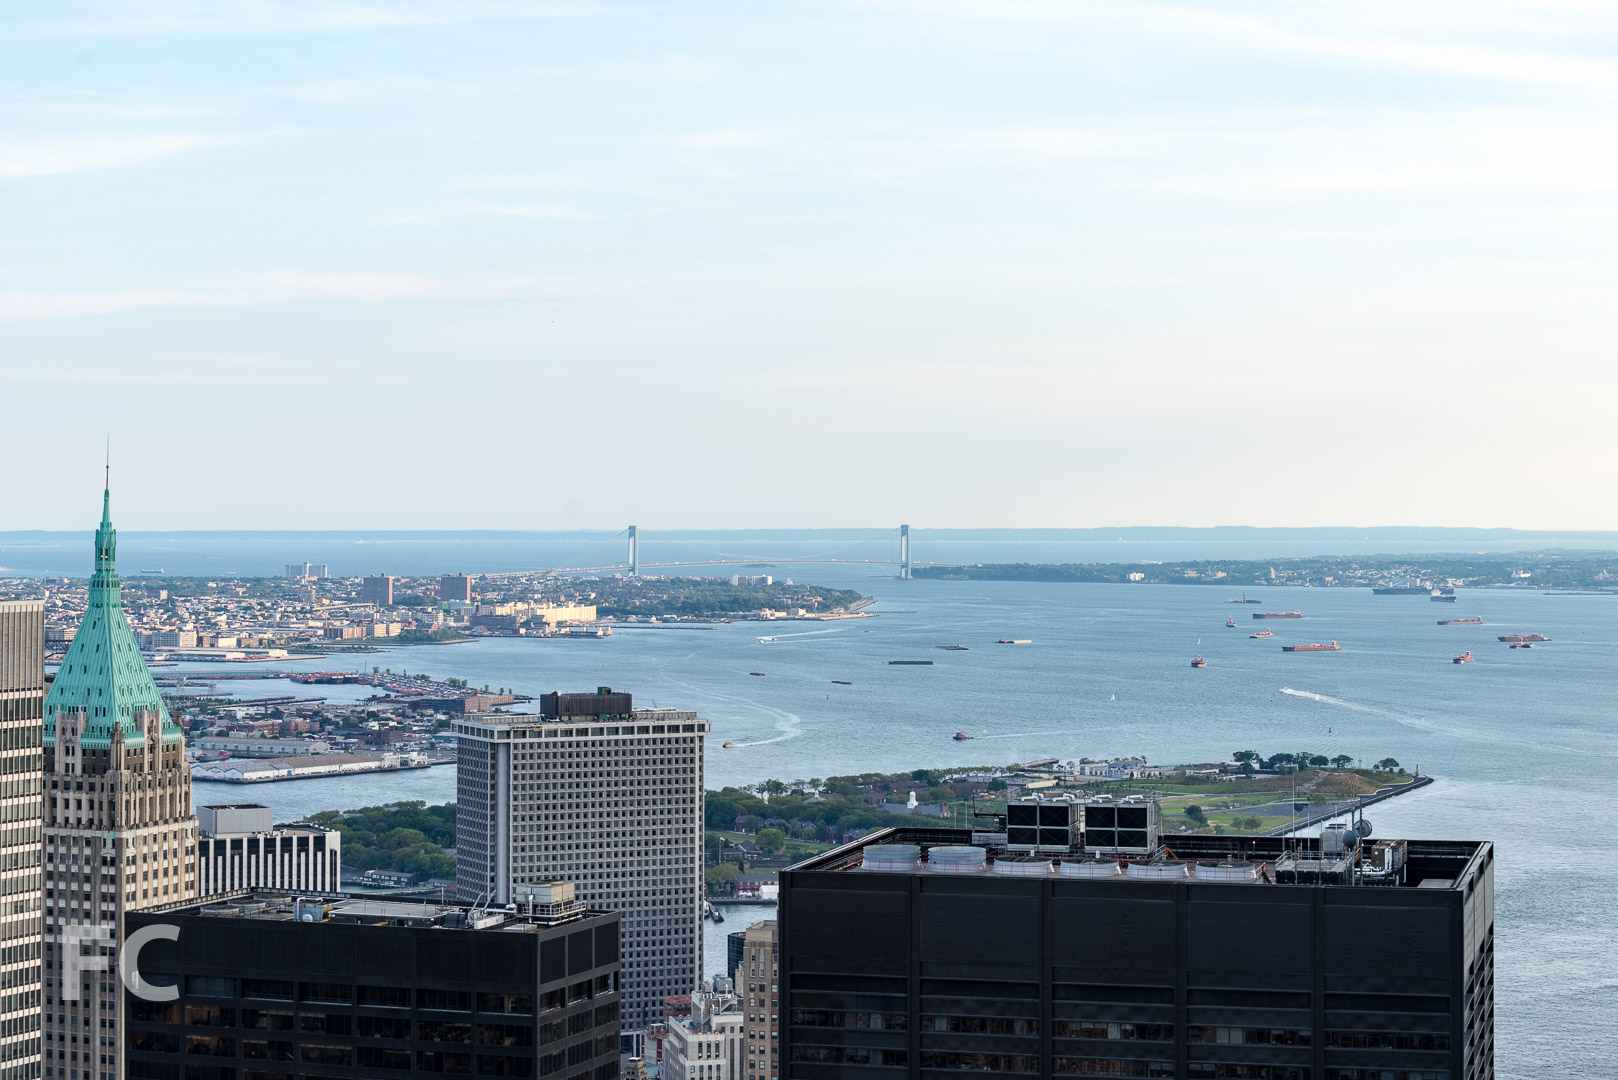 Governors Island and the evening rush hour traffic in the New York harbor.